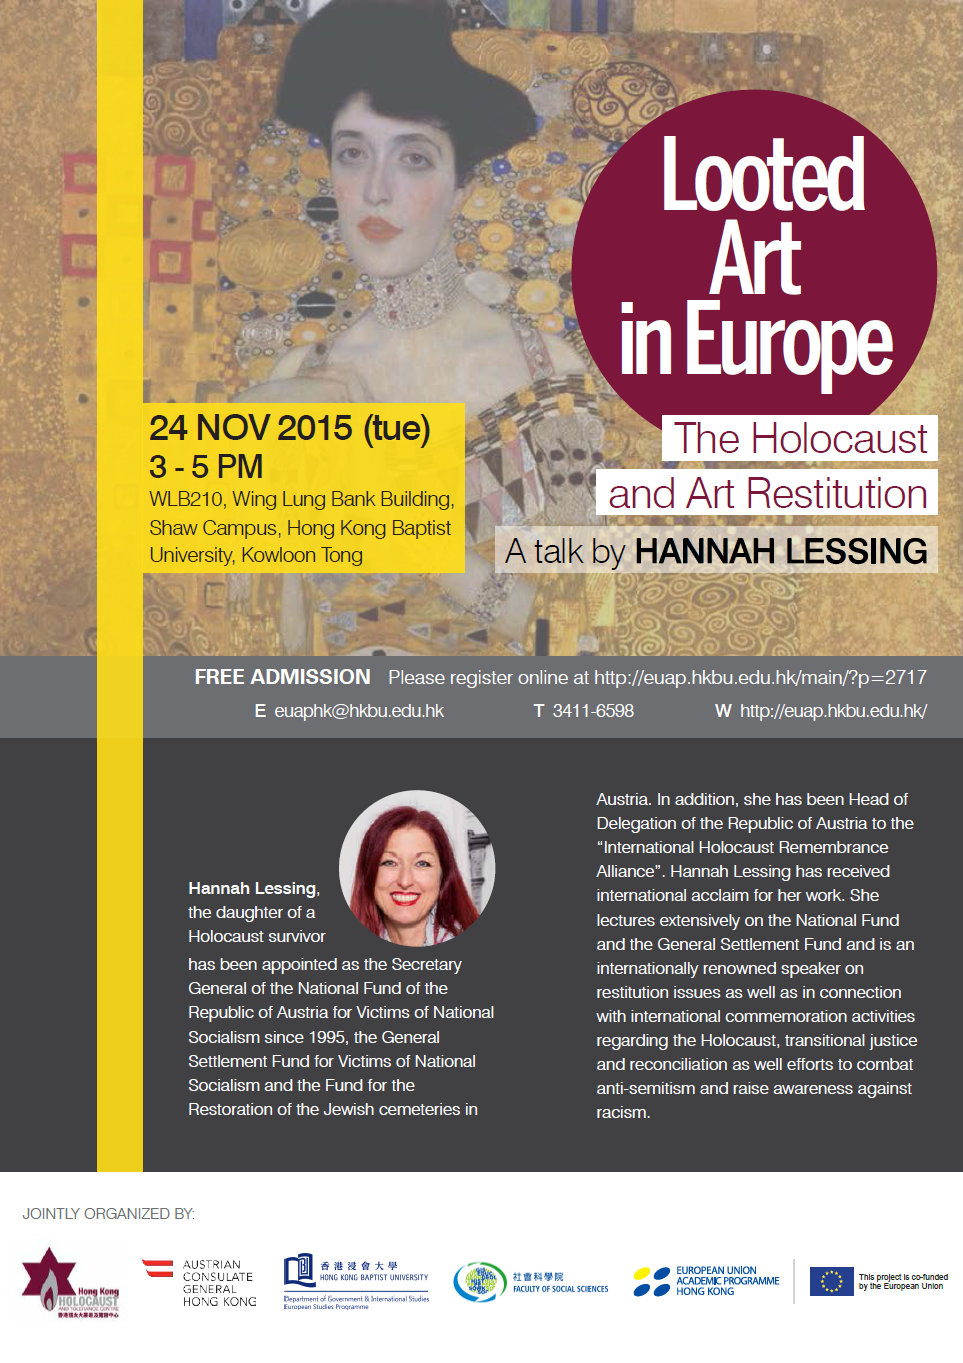 "Hannah Lessing: Talk on Art Restitution ""Looted Art in Europe - The Holocaust and Art Restitution"""